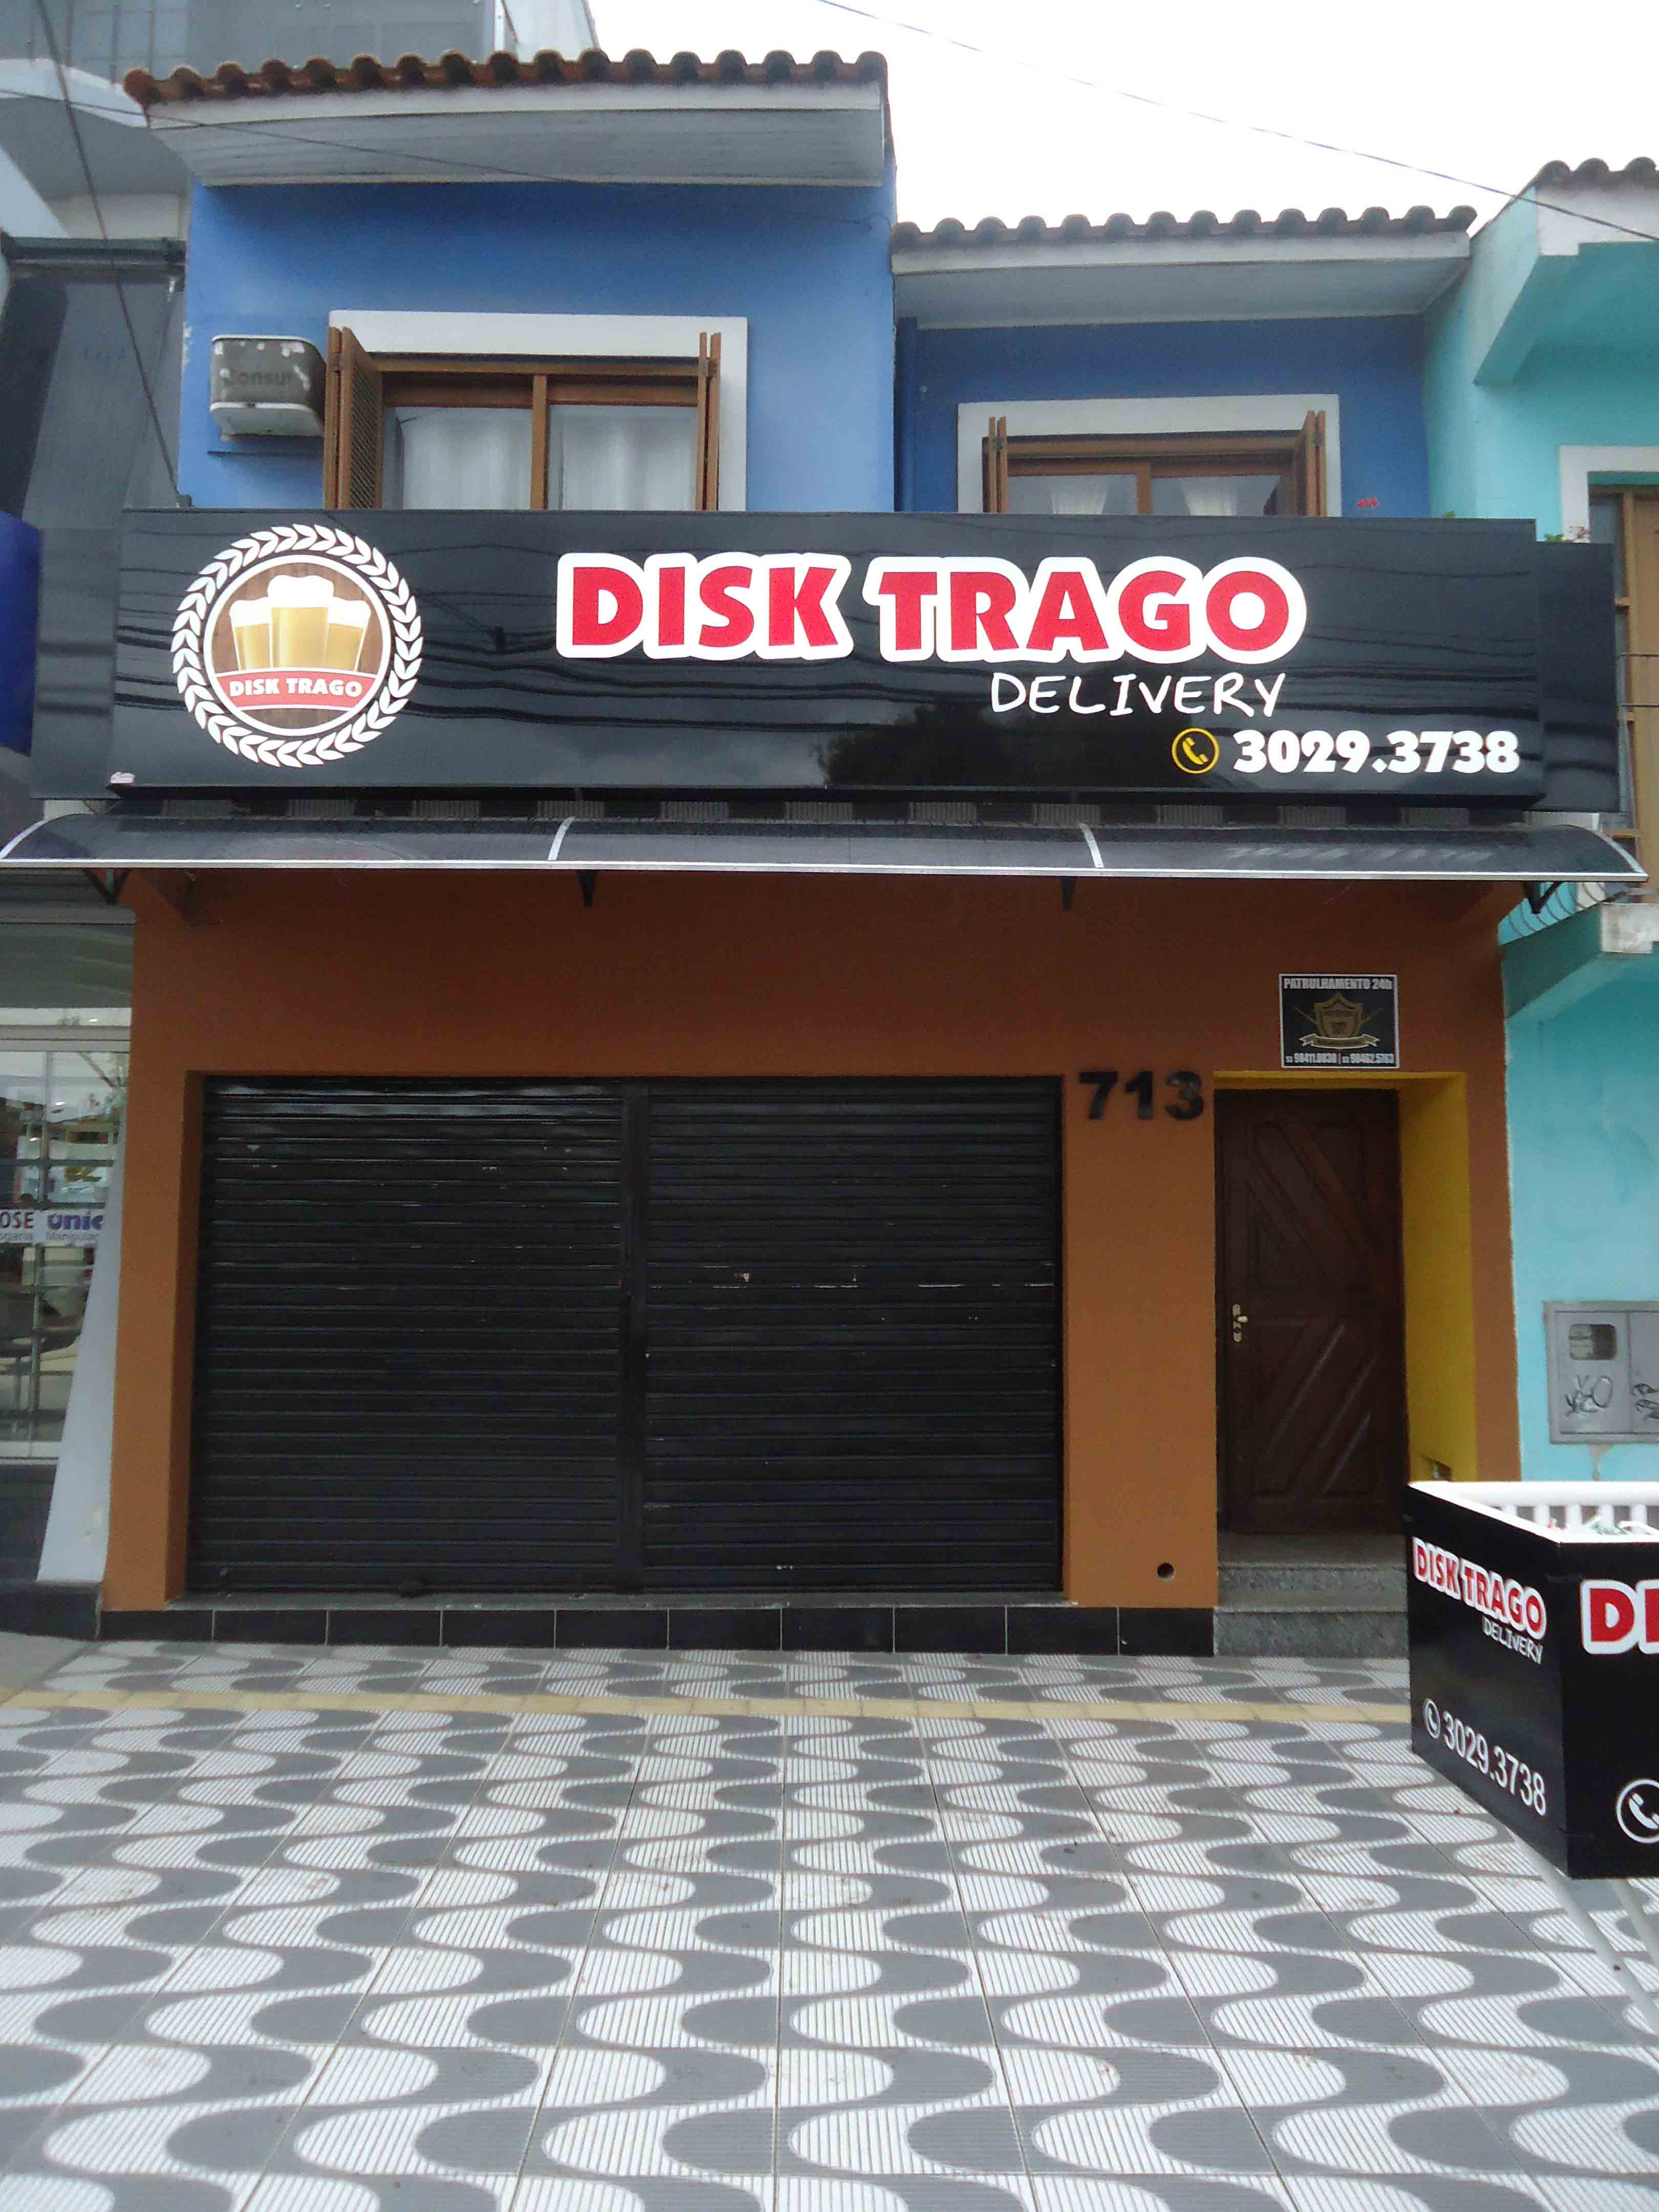 Disk Trago Delivery